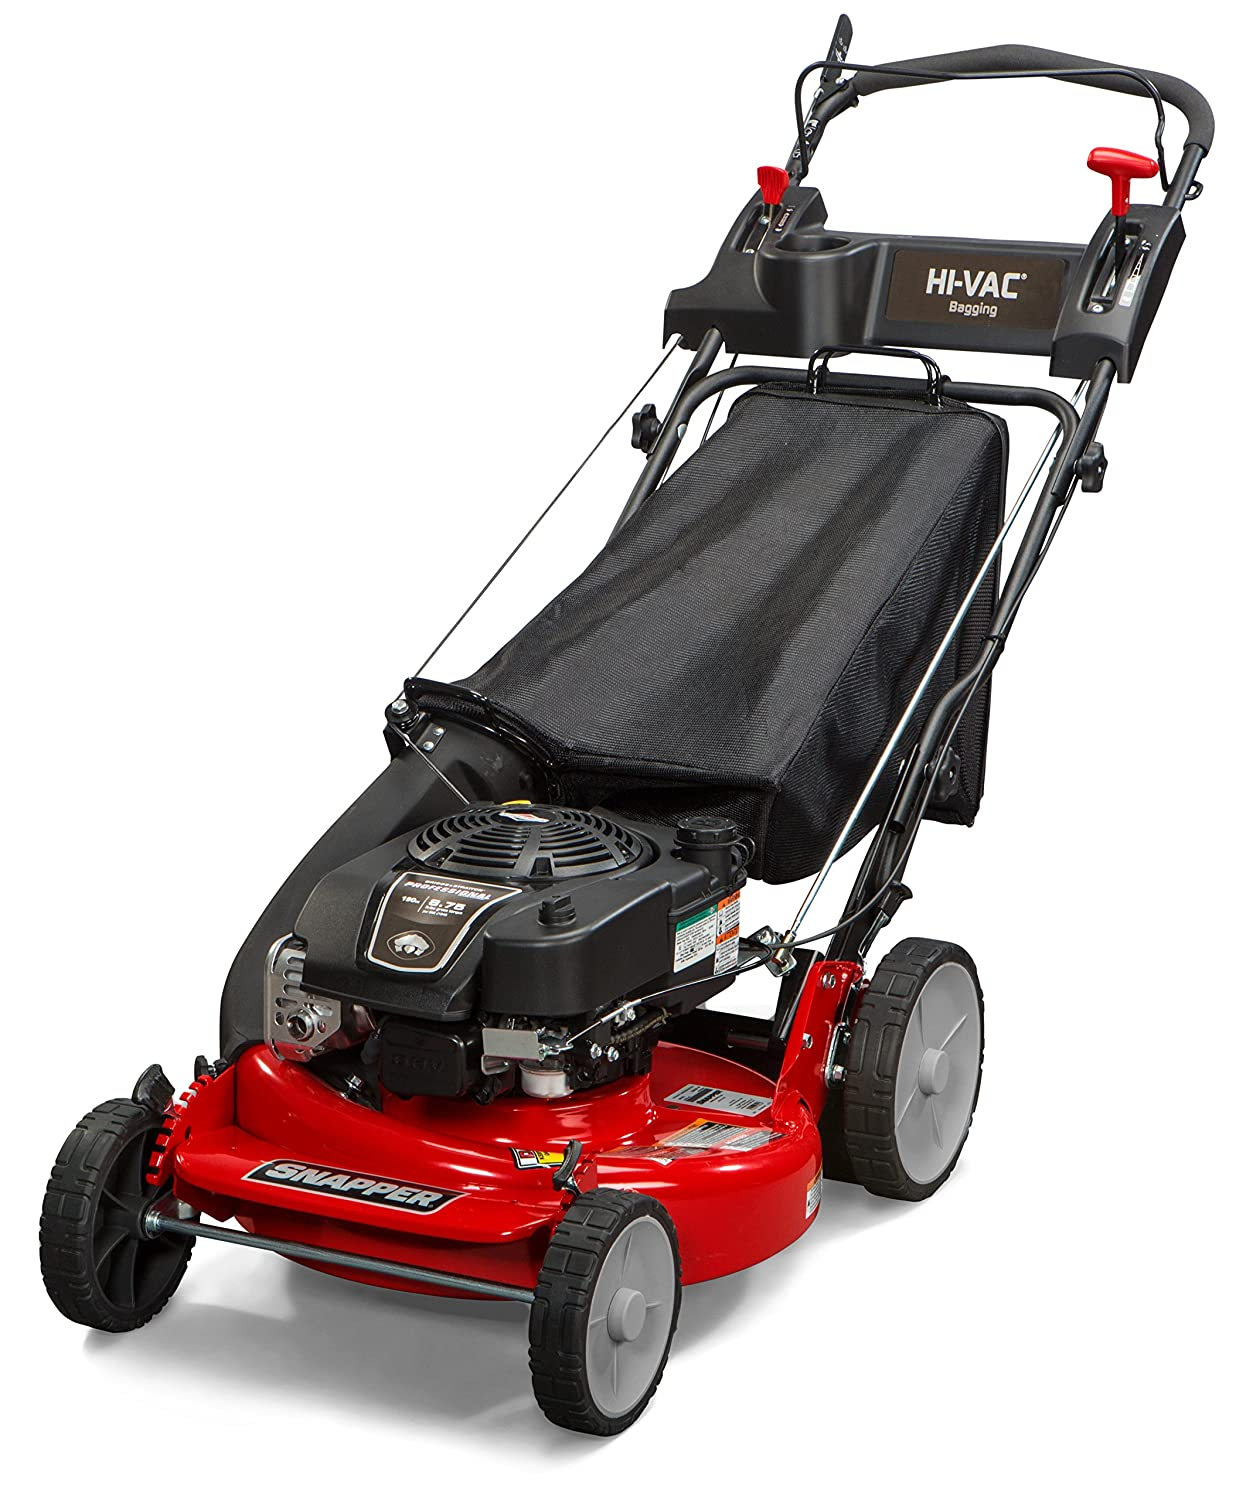 snapper lawn mower snapper lawn mower snapper lawn mowers ( review & compare prices 2018) 91uj7jTo1uL